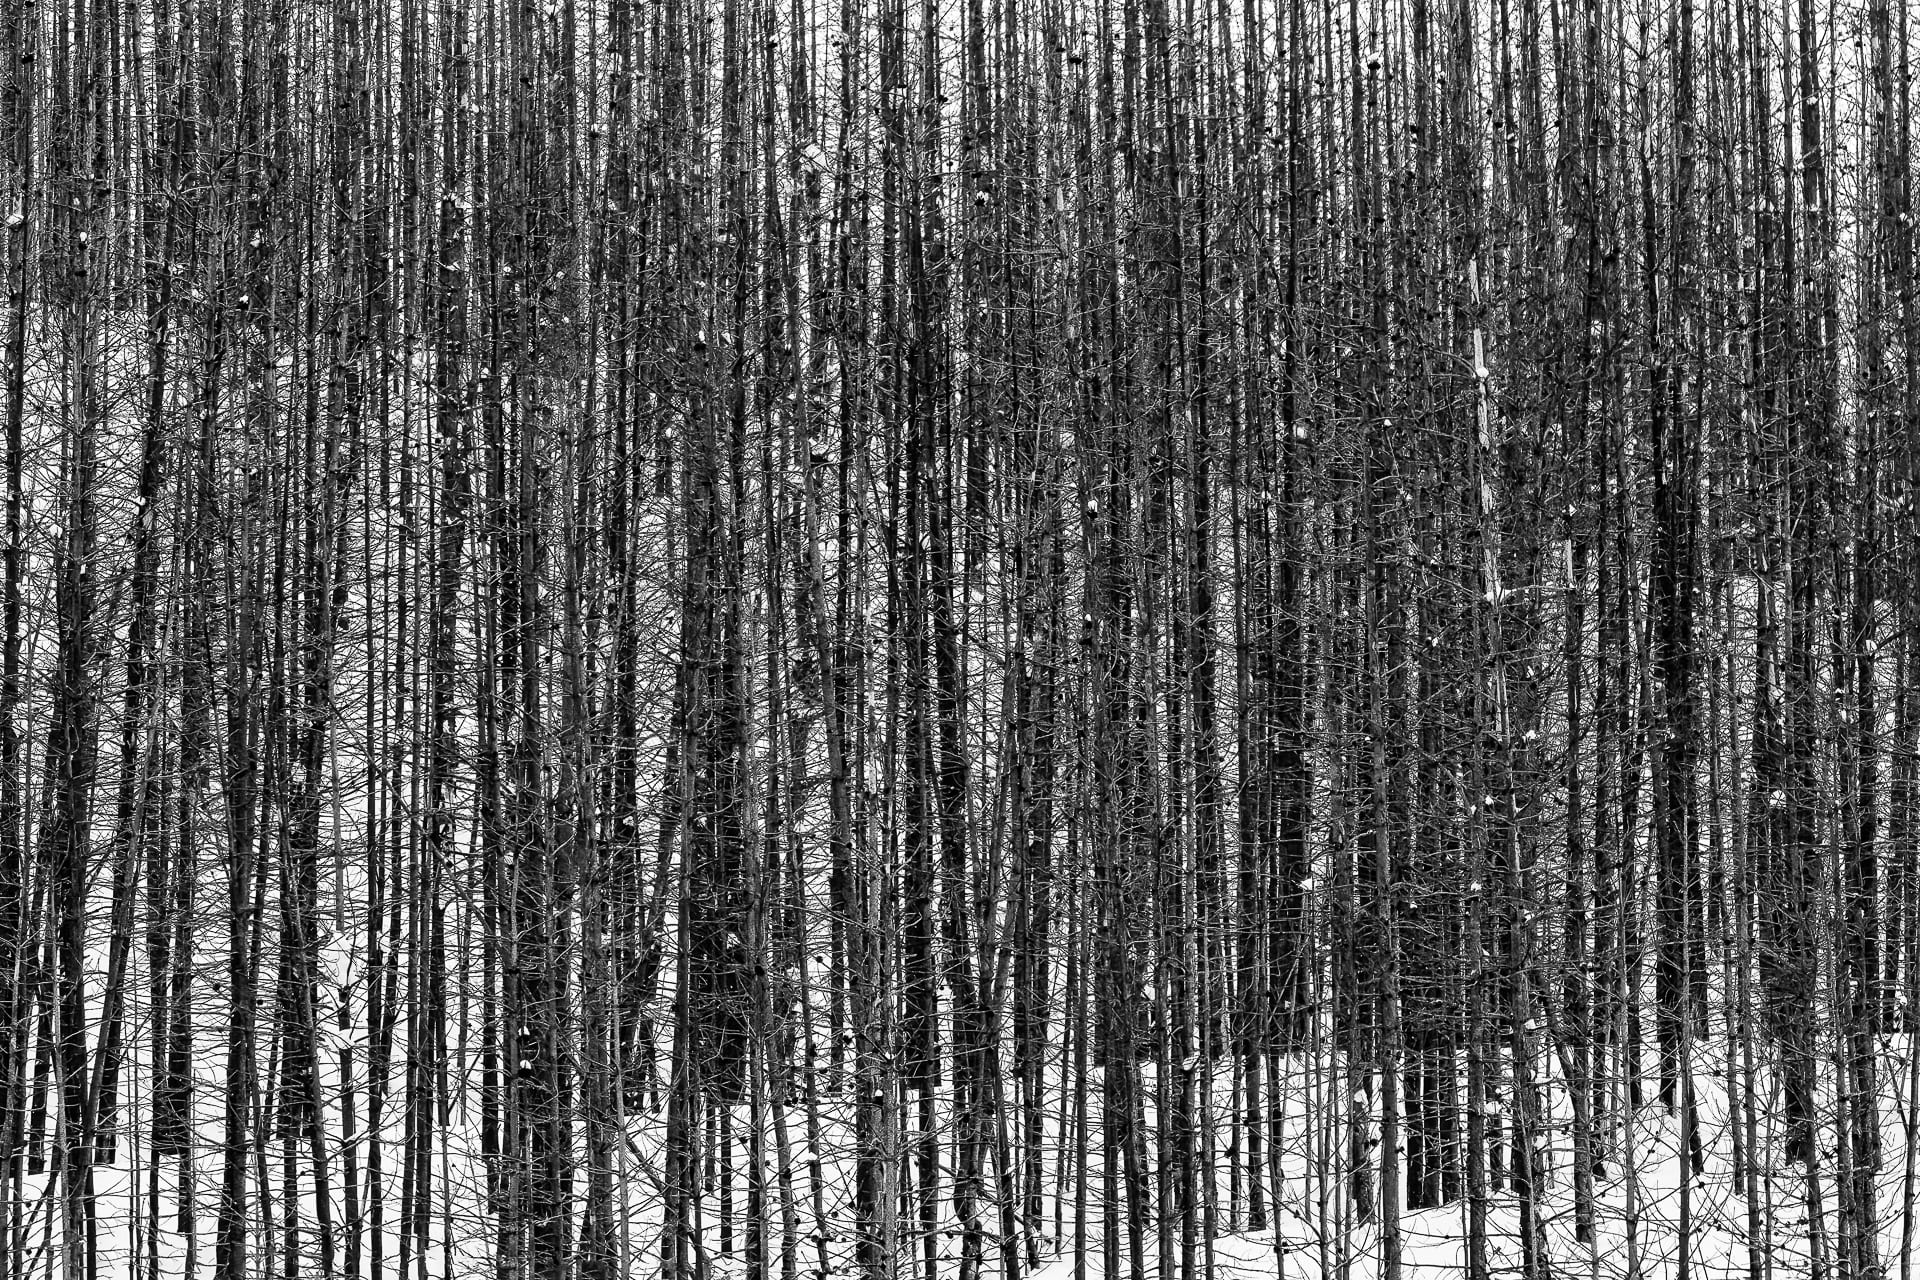 Burned trees on snow-covered hills.